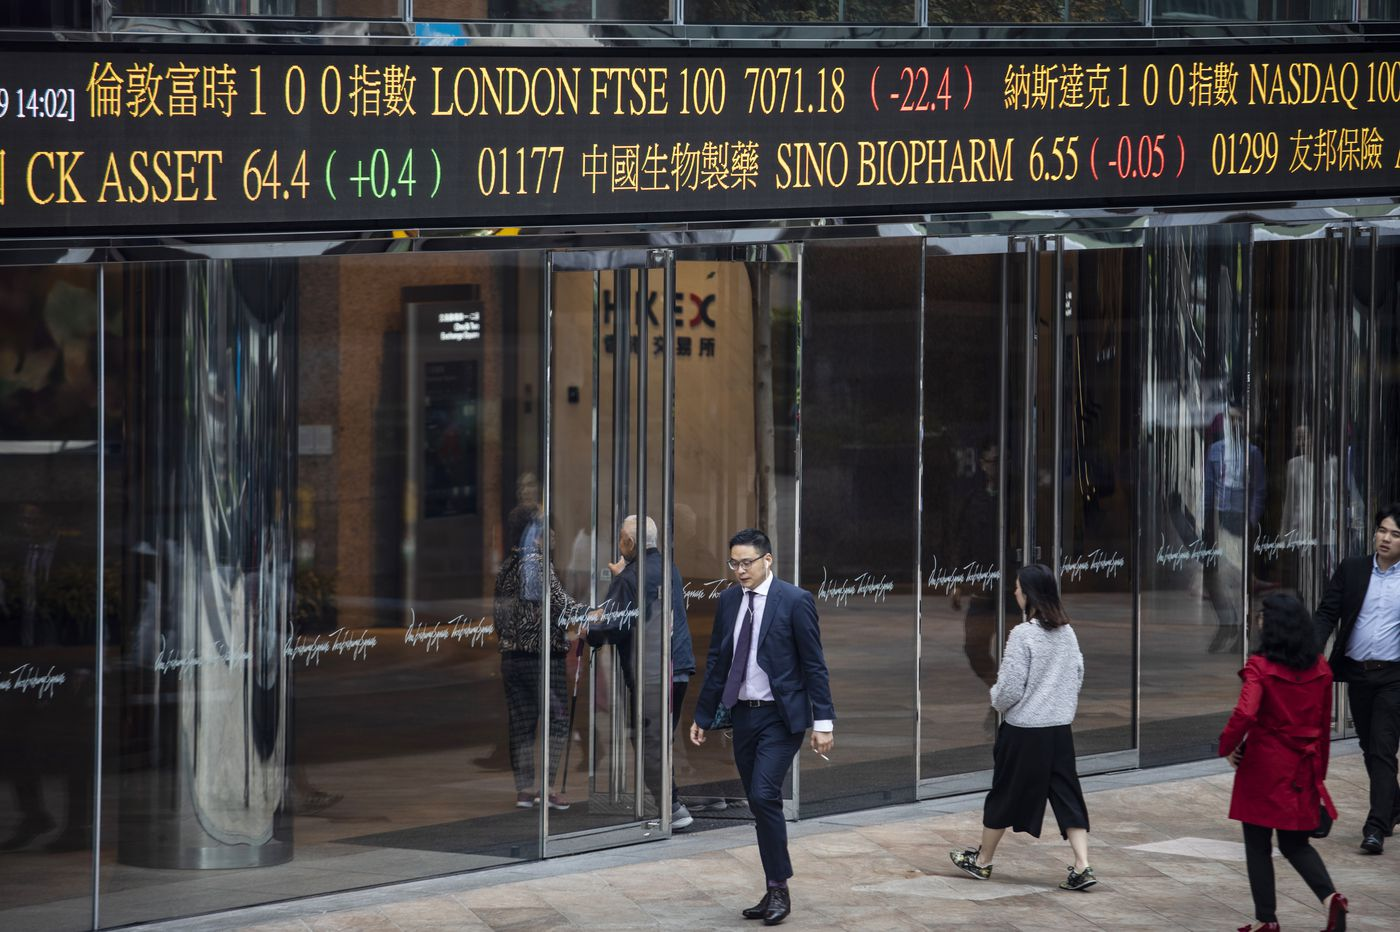 Exton firm raises US $200 million in Hong Kong IPO